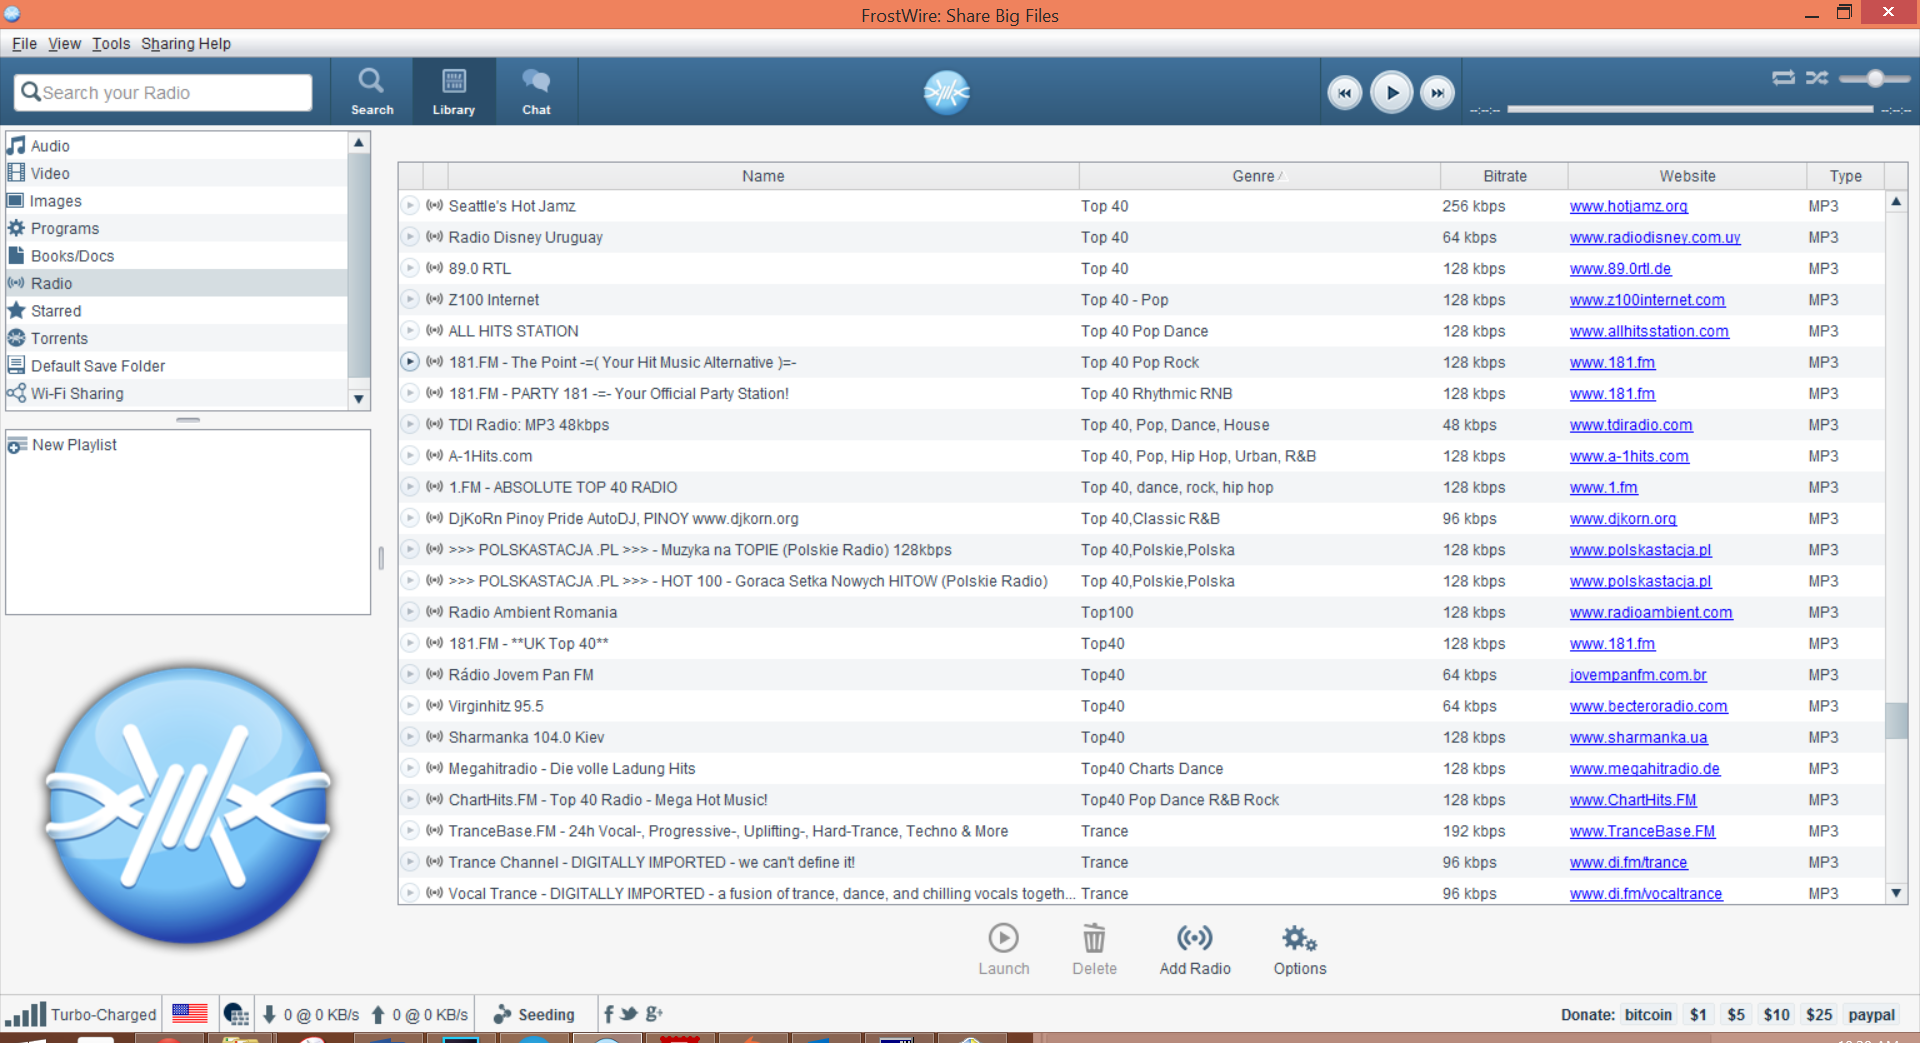 how to download movies using frostwire